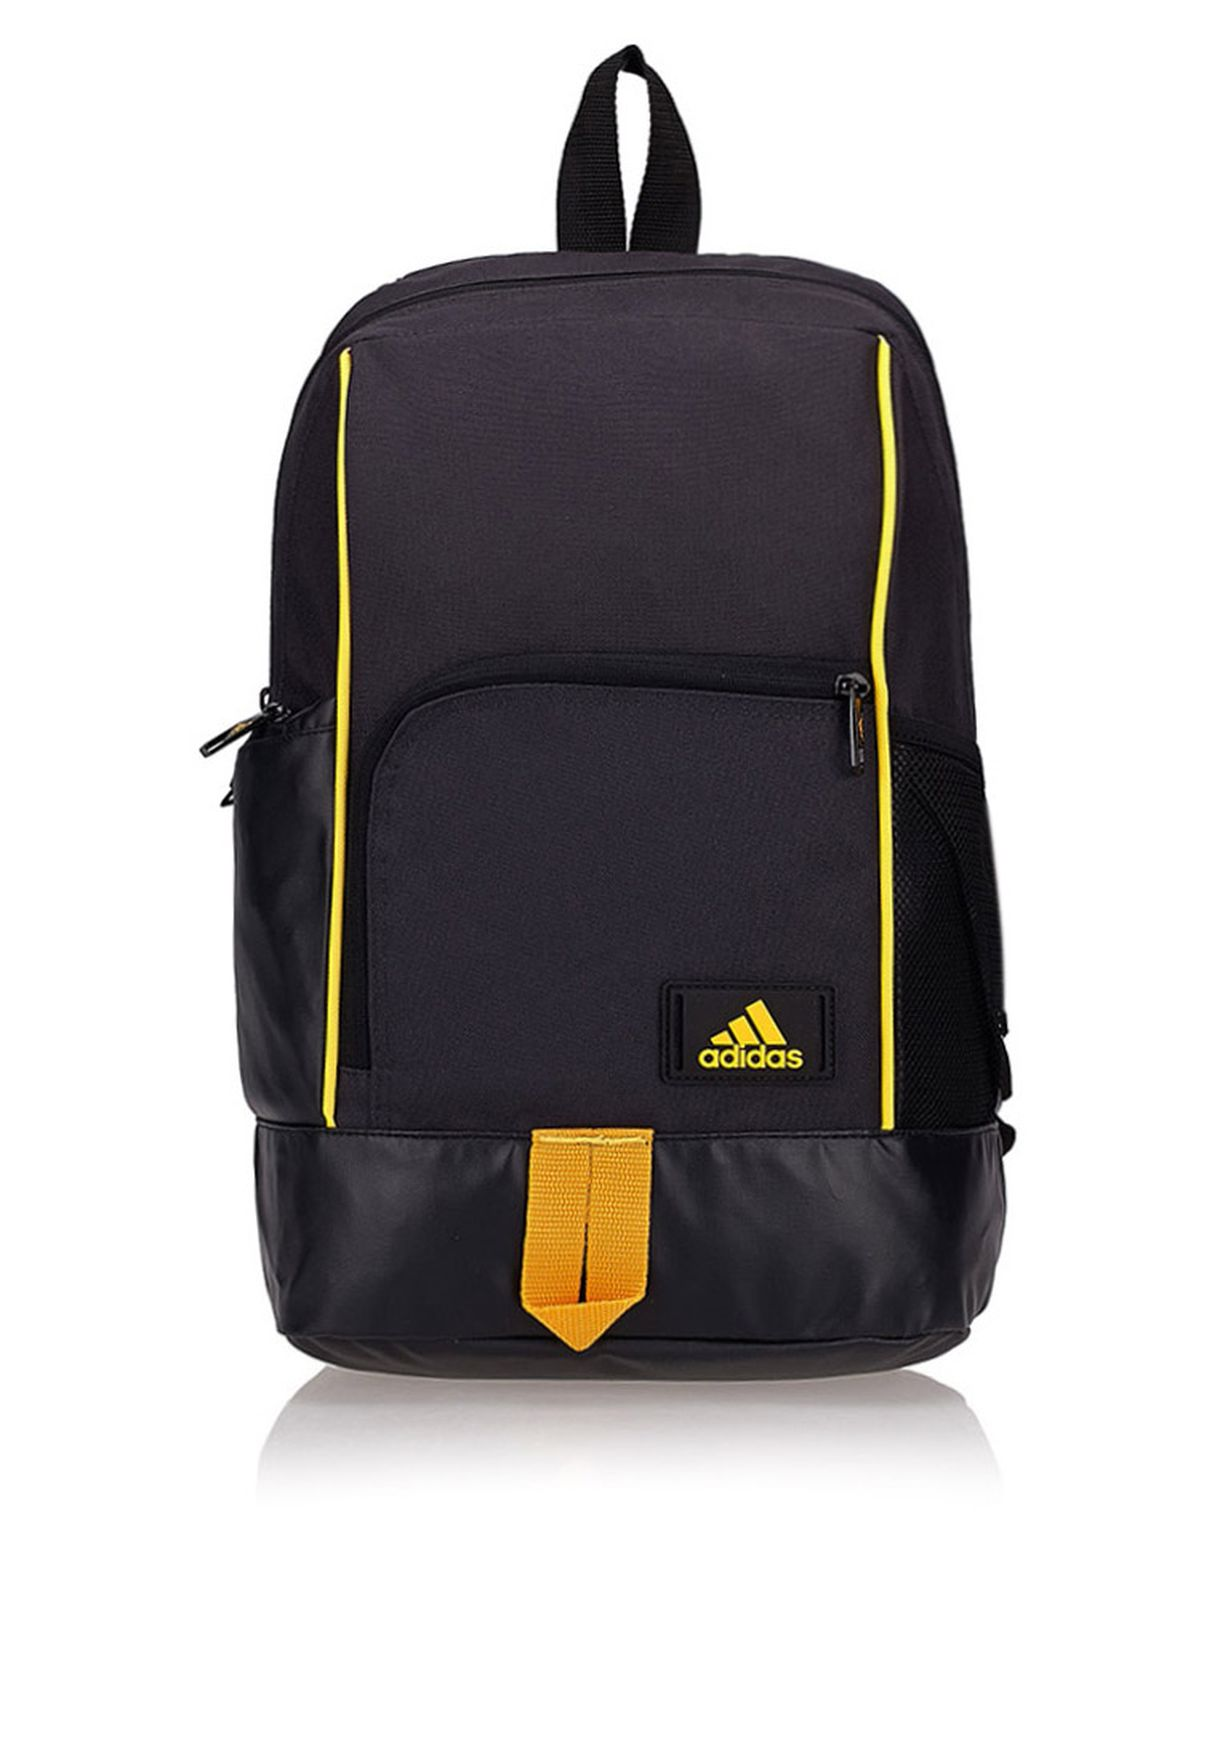 aabc71a19488 Shop adidas black Small NGA 1.0 Backpack M67240 for Men in Qatar -  AD476AC10RDP